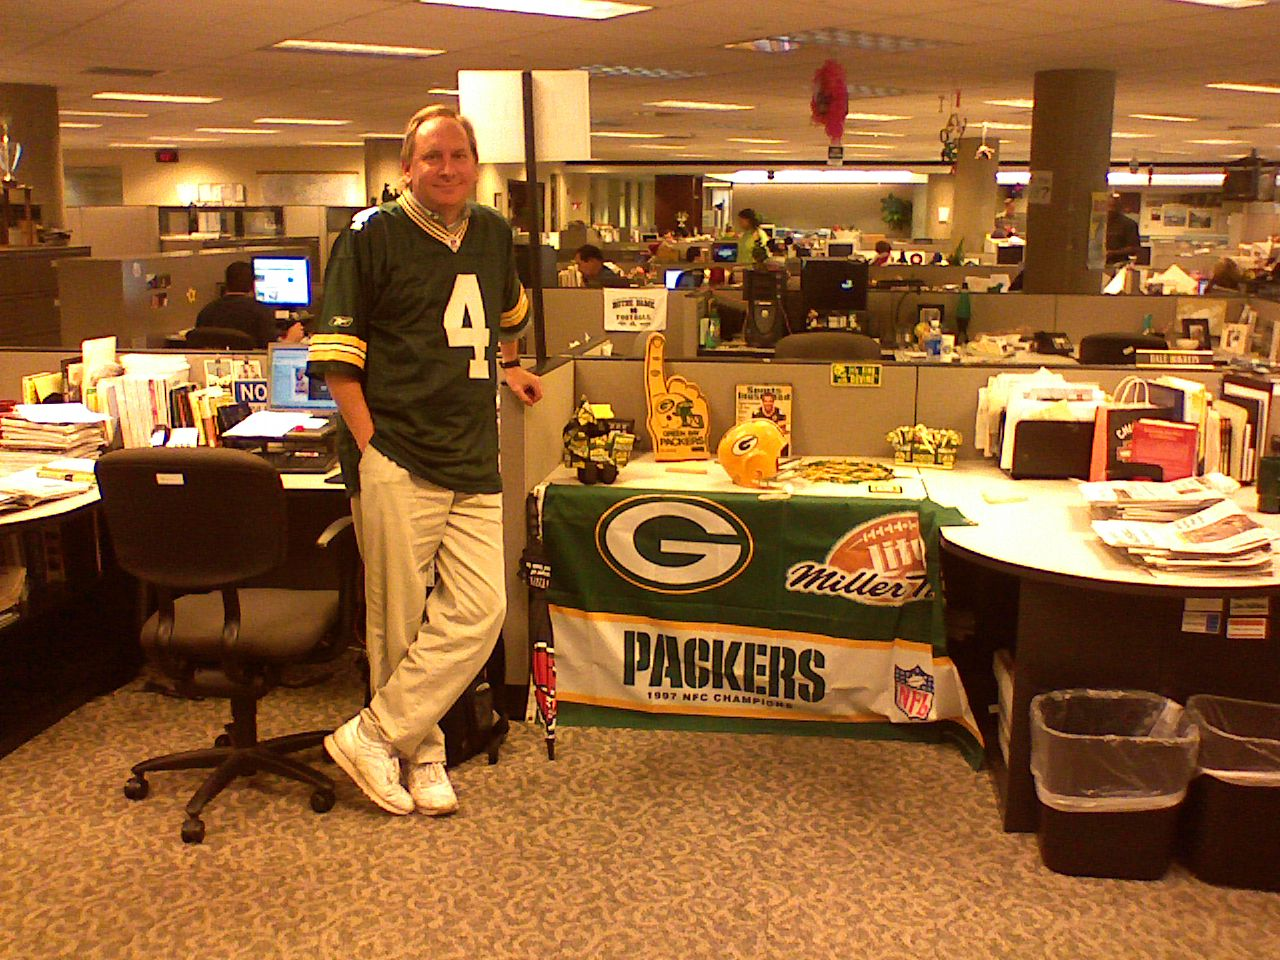 Jerry and the Packers shrine